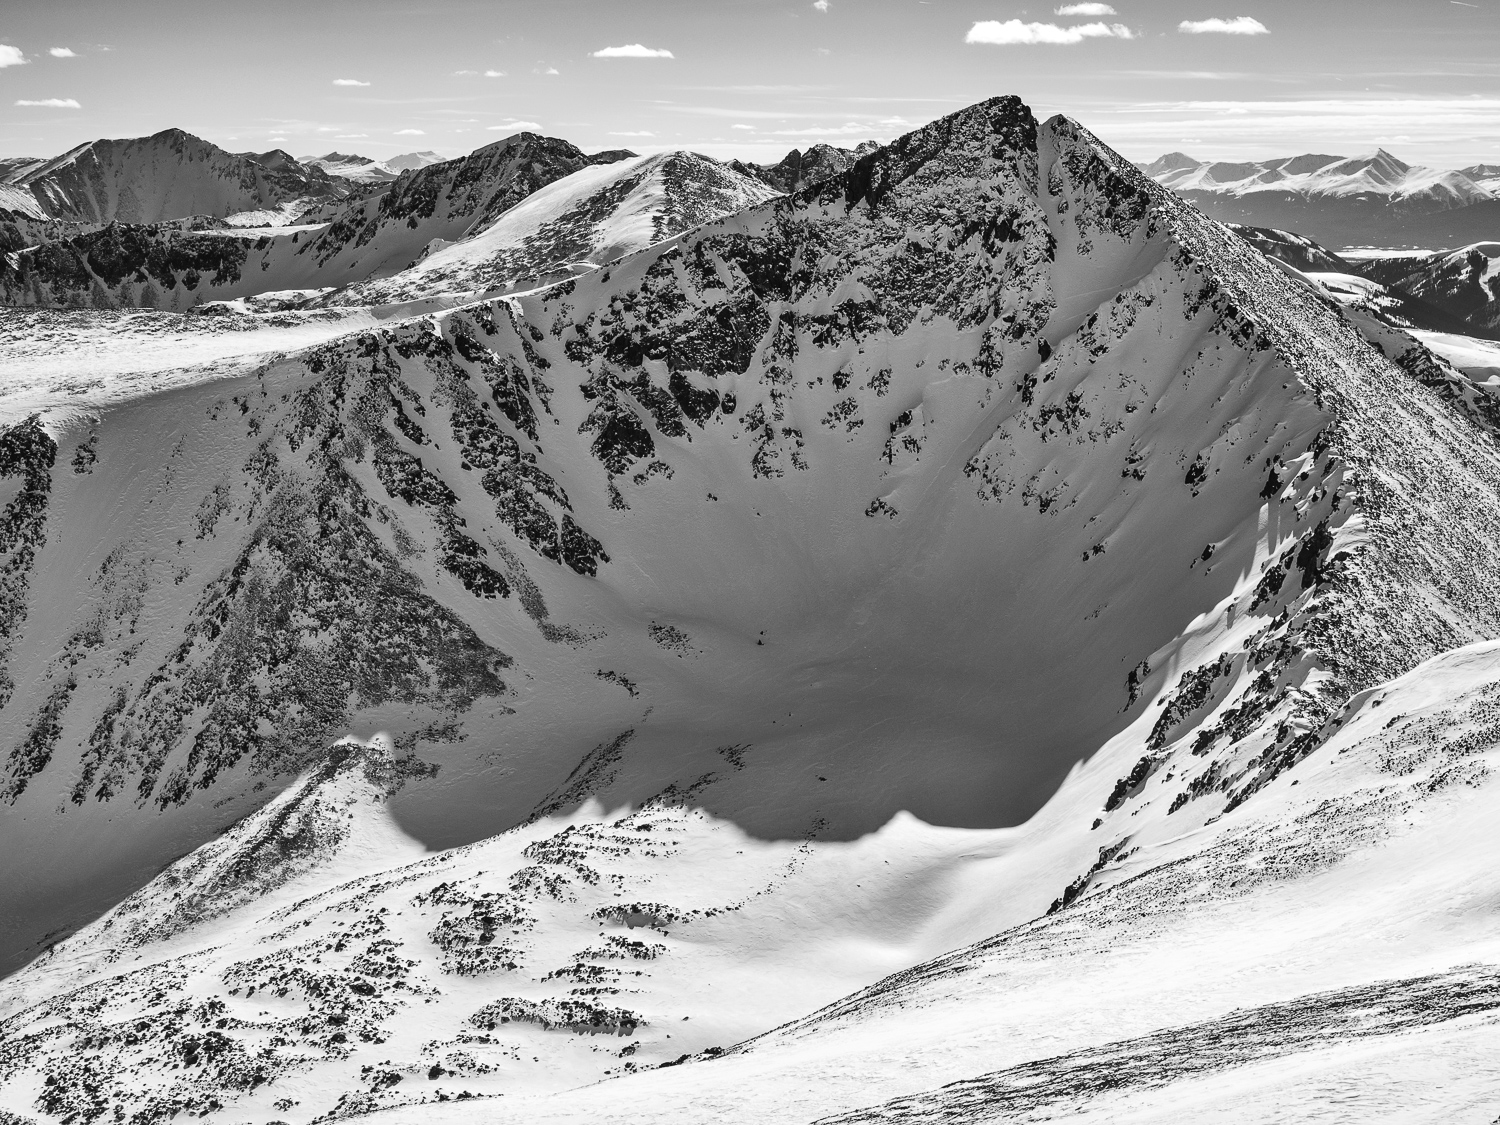 North Couloir - Pacific Pk 13,950'